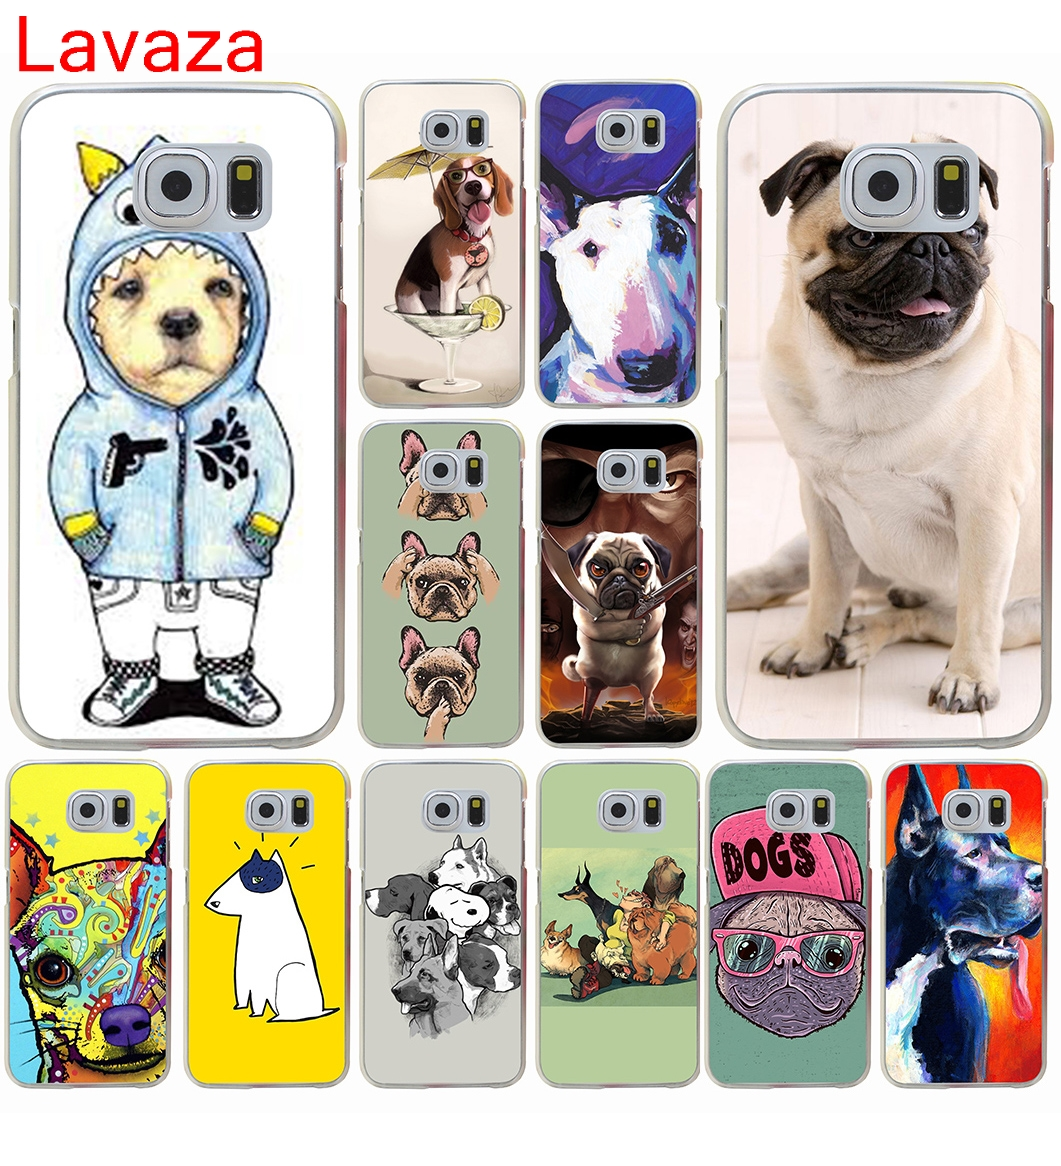 Lavaza Tattooed Bullterrier Cute dog Biaoqing Hard Transparent for Galaxy S4 S5 & Mini S ...